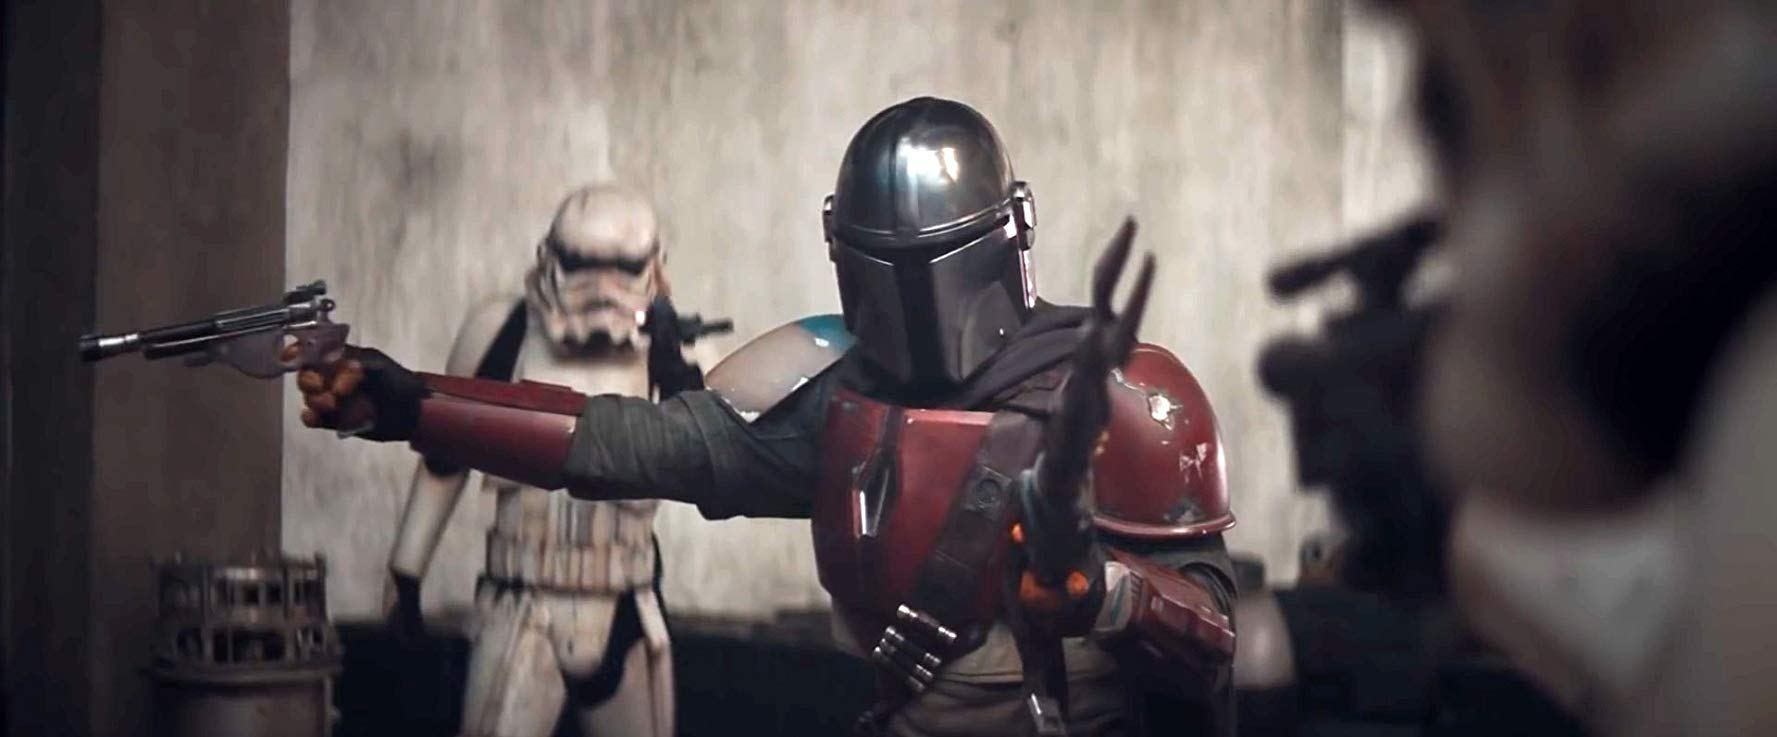 The Mandalorian Chapter 1 Review Defying The Line Between Television And Film Discussingfilm